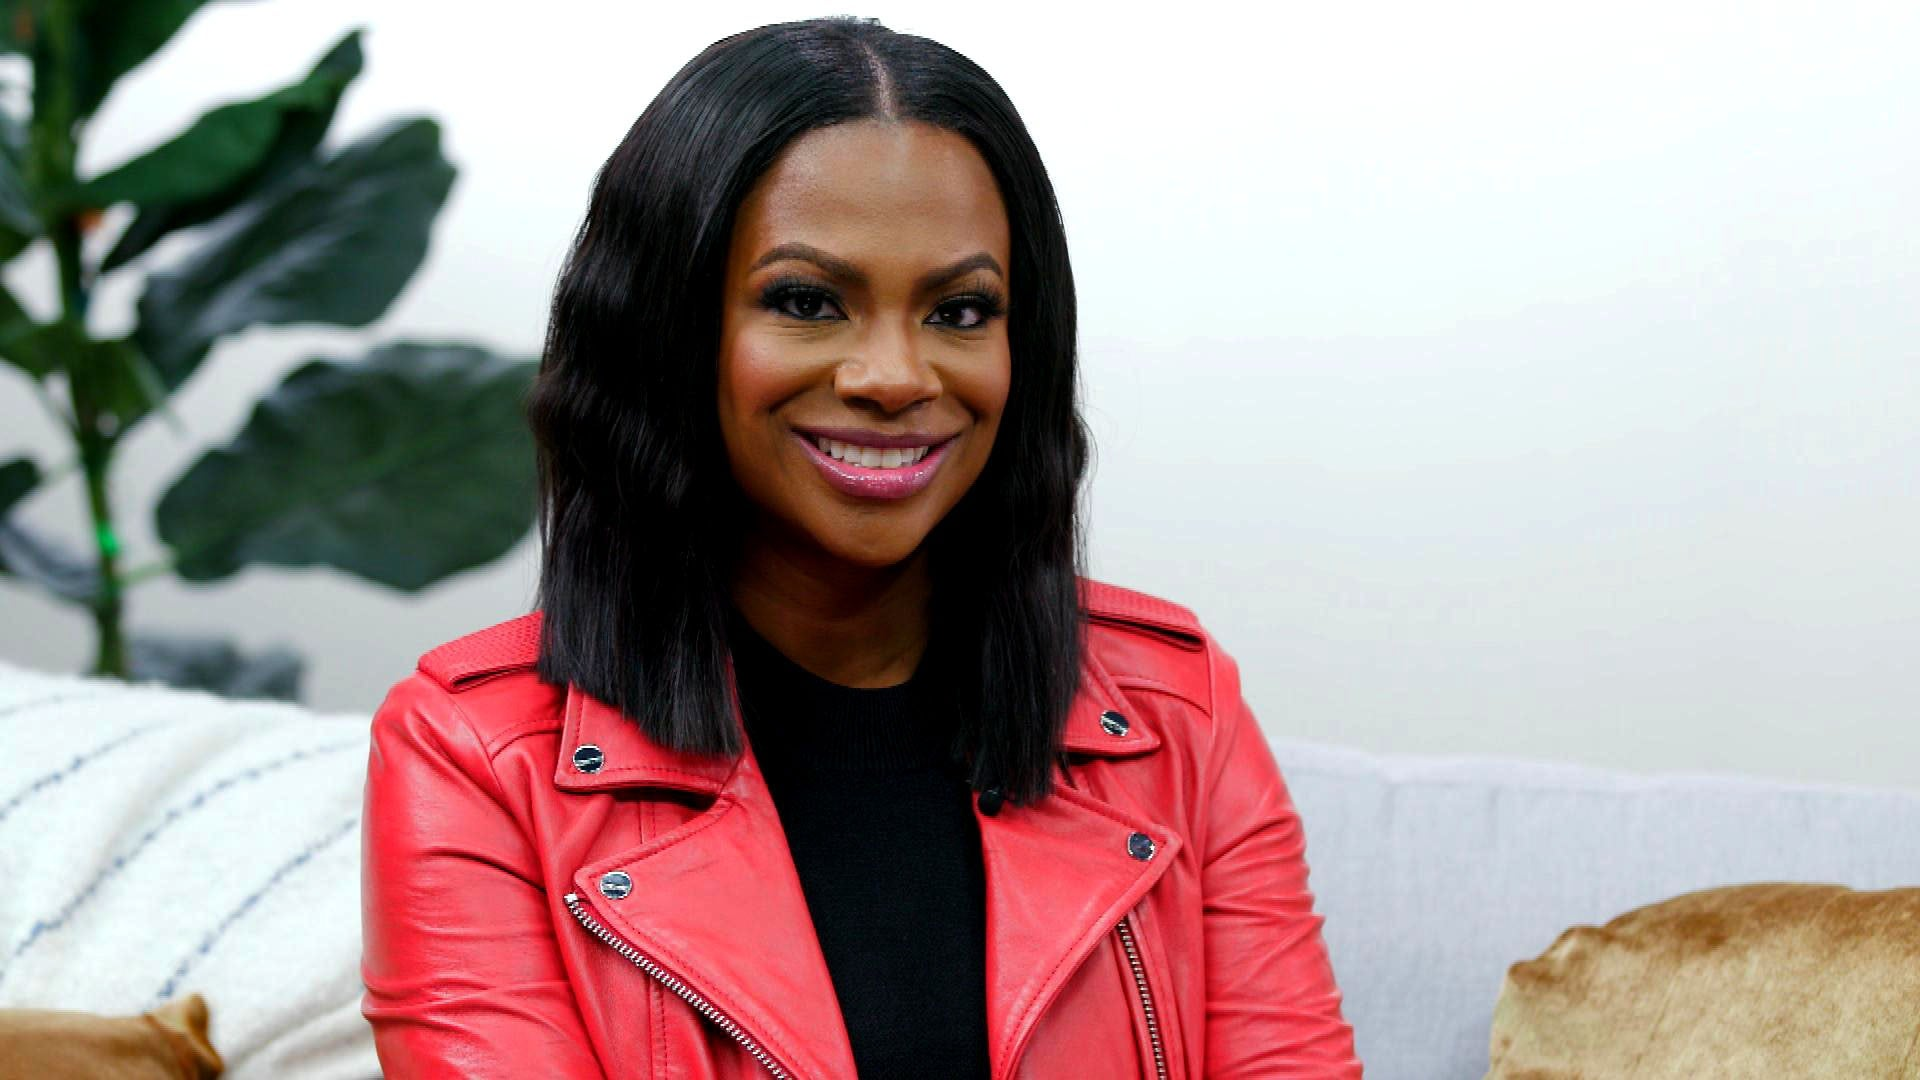 kandi-burruss-advice-has-fans-in-awe-check-out-the-post-she-recently-shared-and-the-dress-shes-flaunting